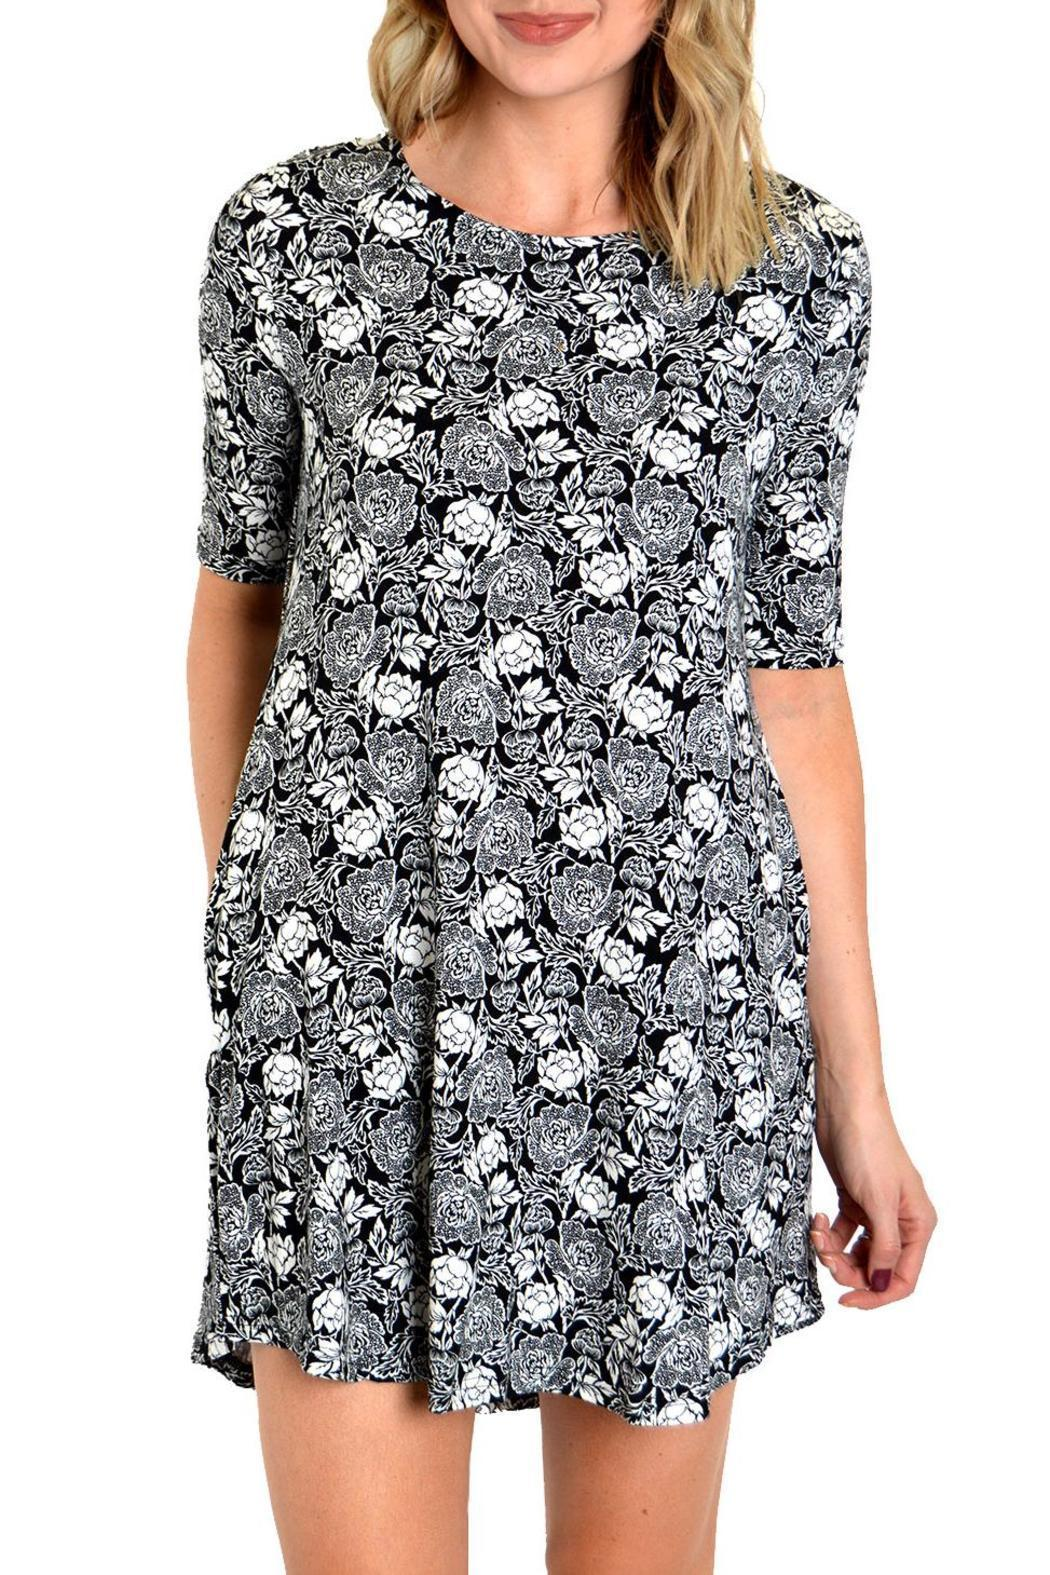 Knot Sisters Lizzy Dress - Main Image